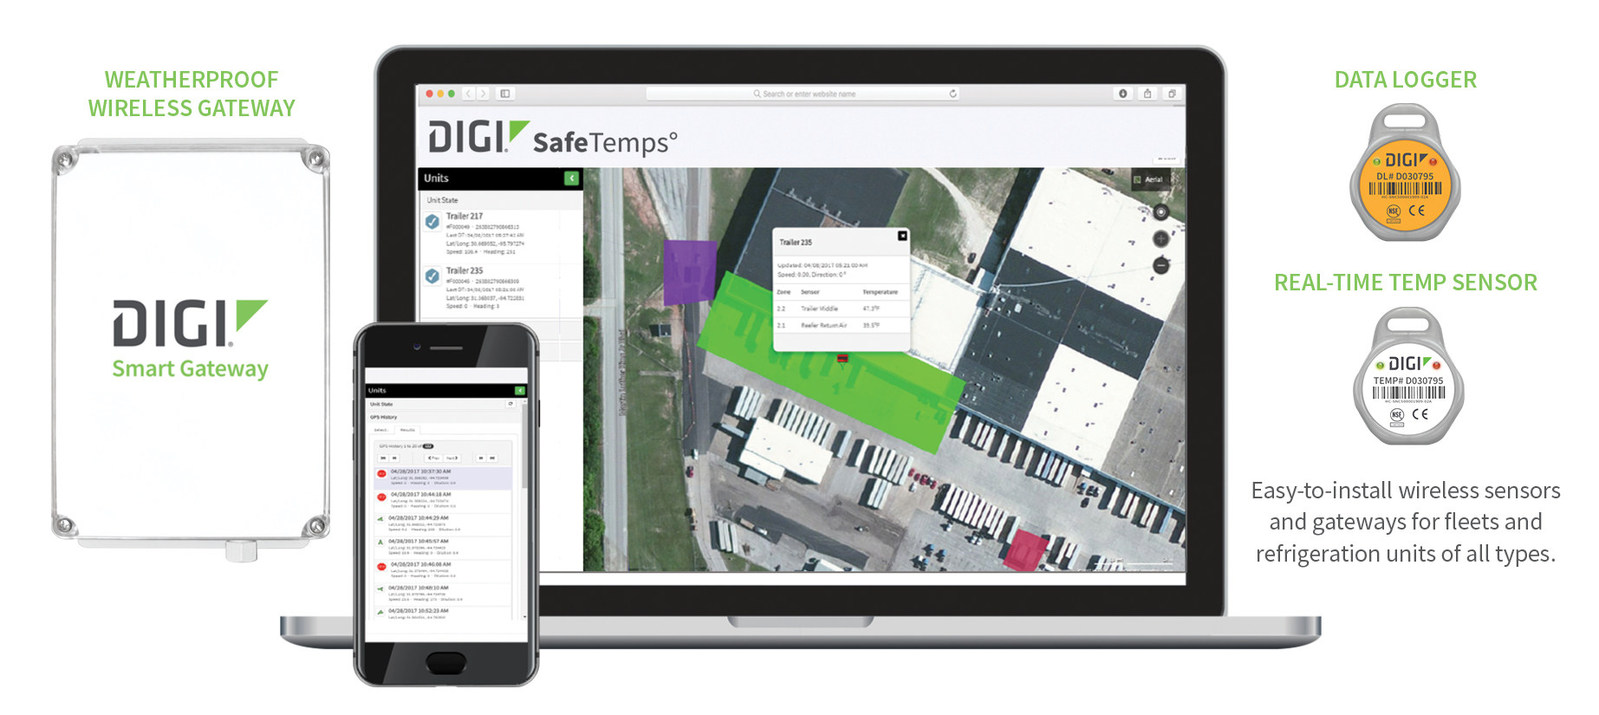 Digi Introduces Patented Data Logger As Part of SafeTemps Solution for Transporting Perishable Goods